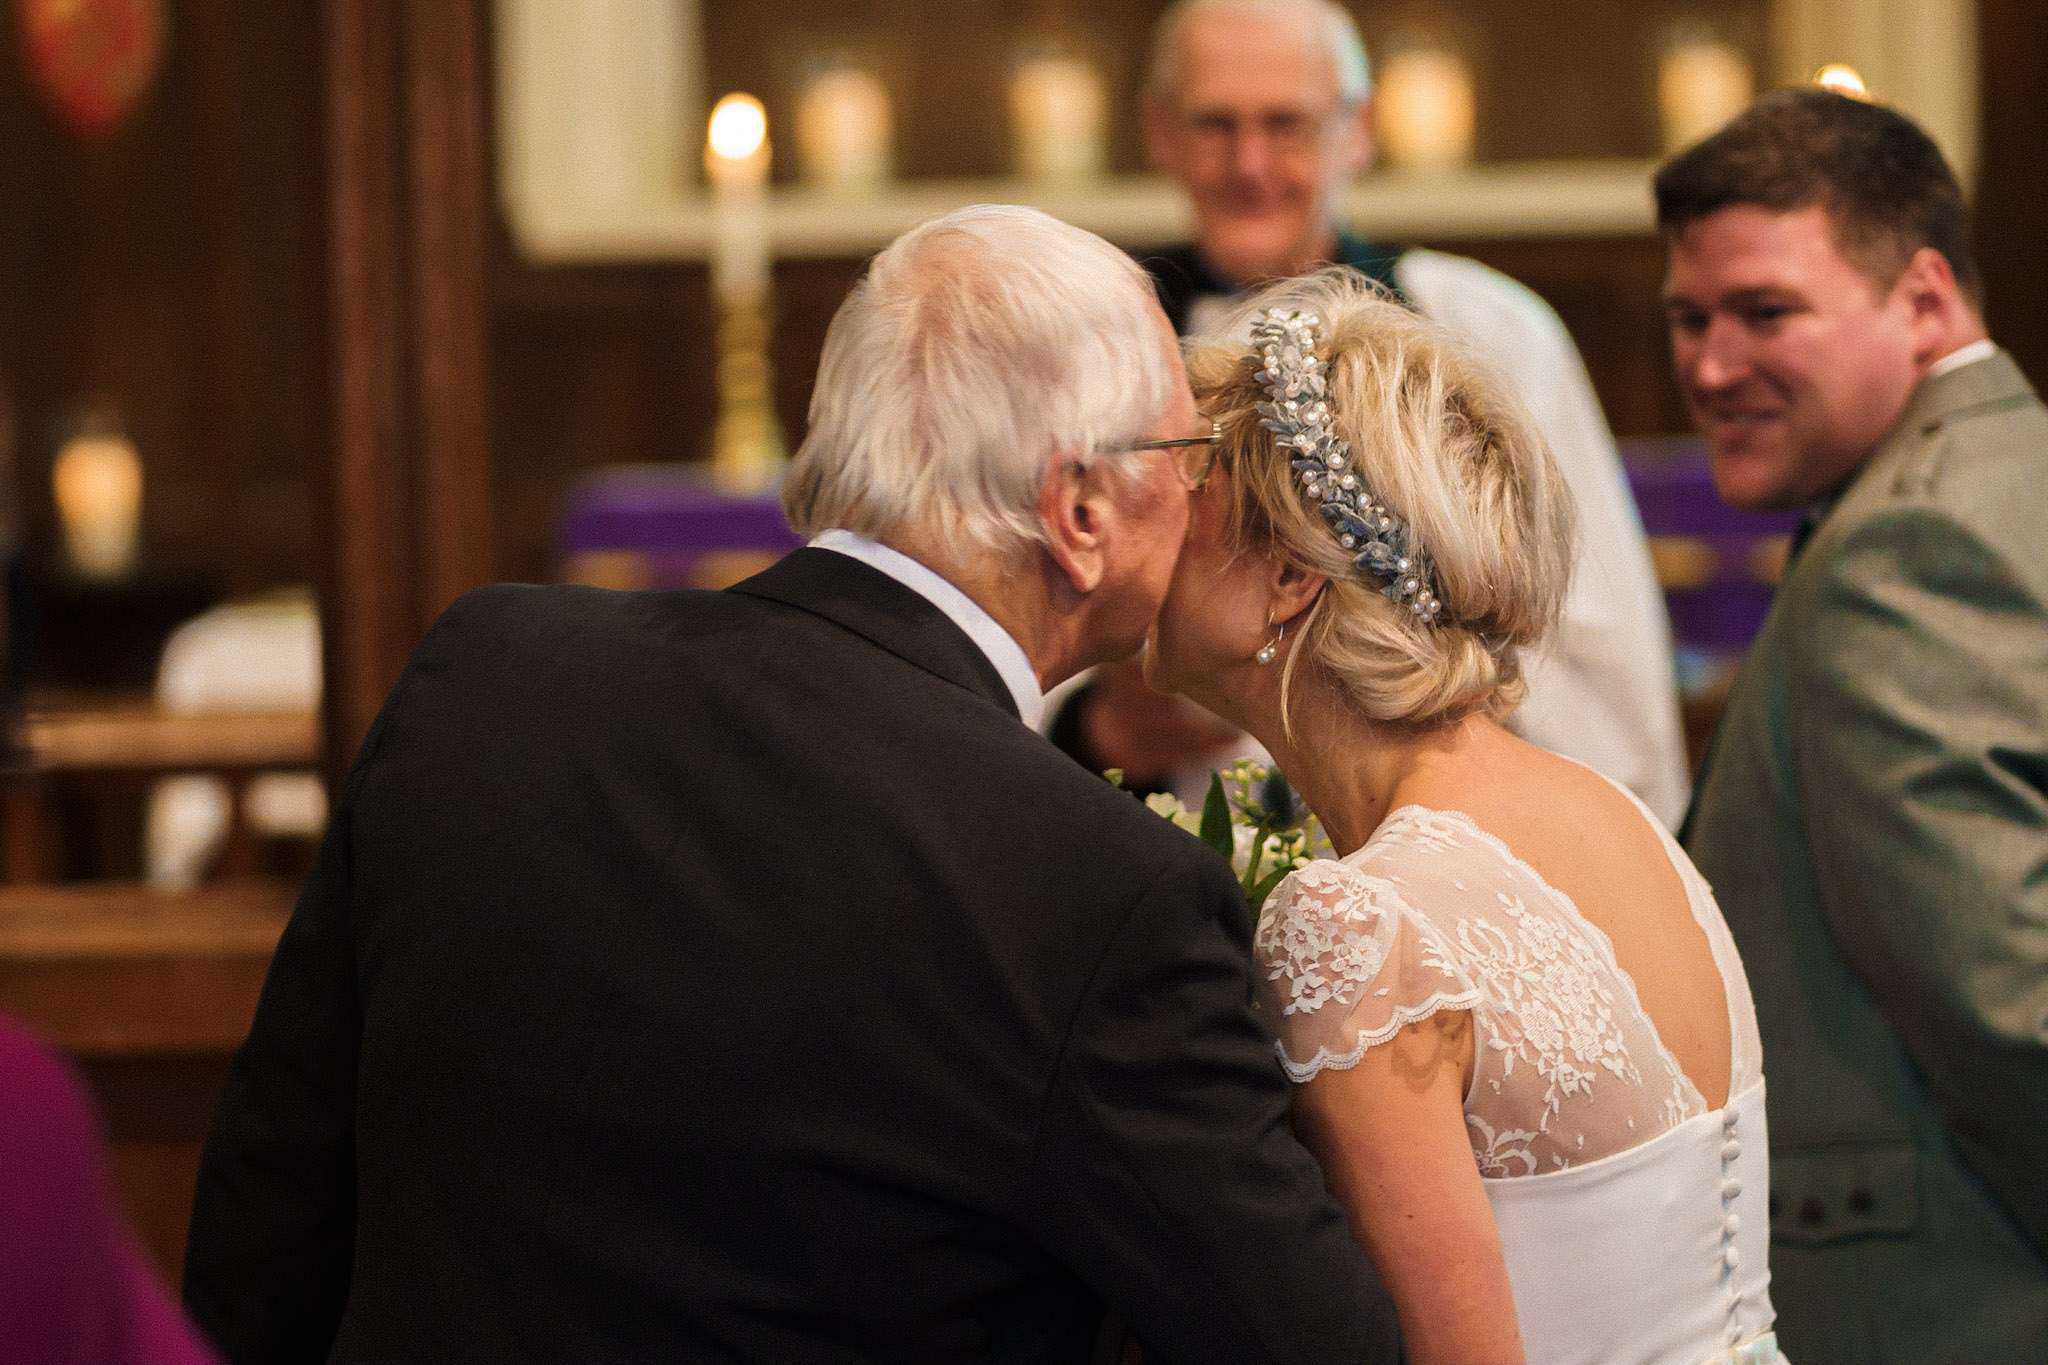 The father of the bride kisses her cheek before she gets married